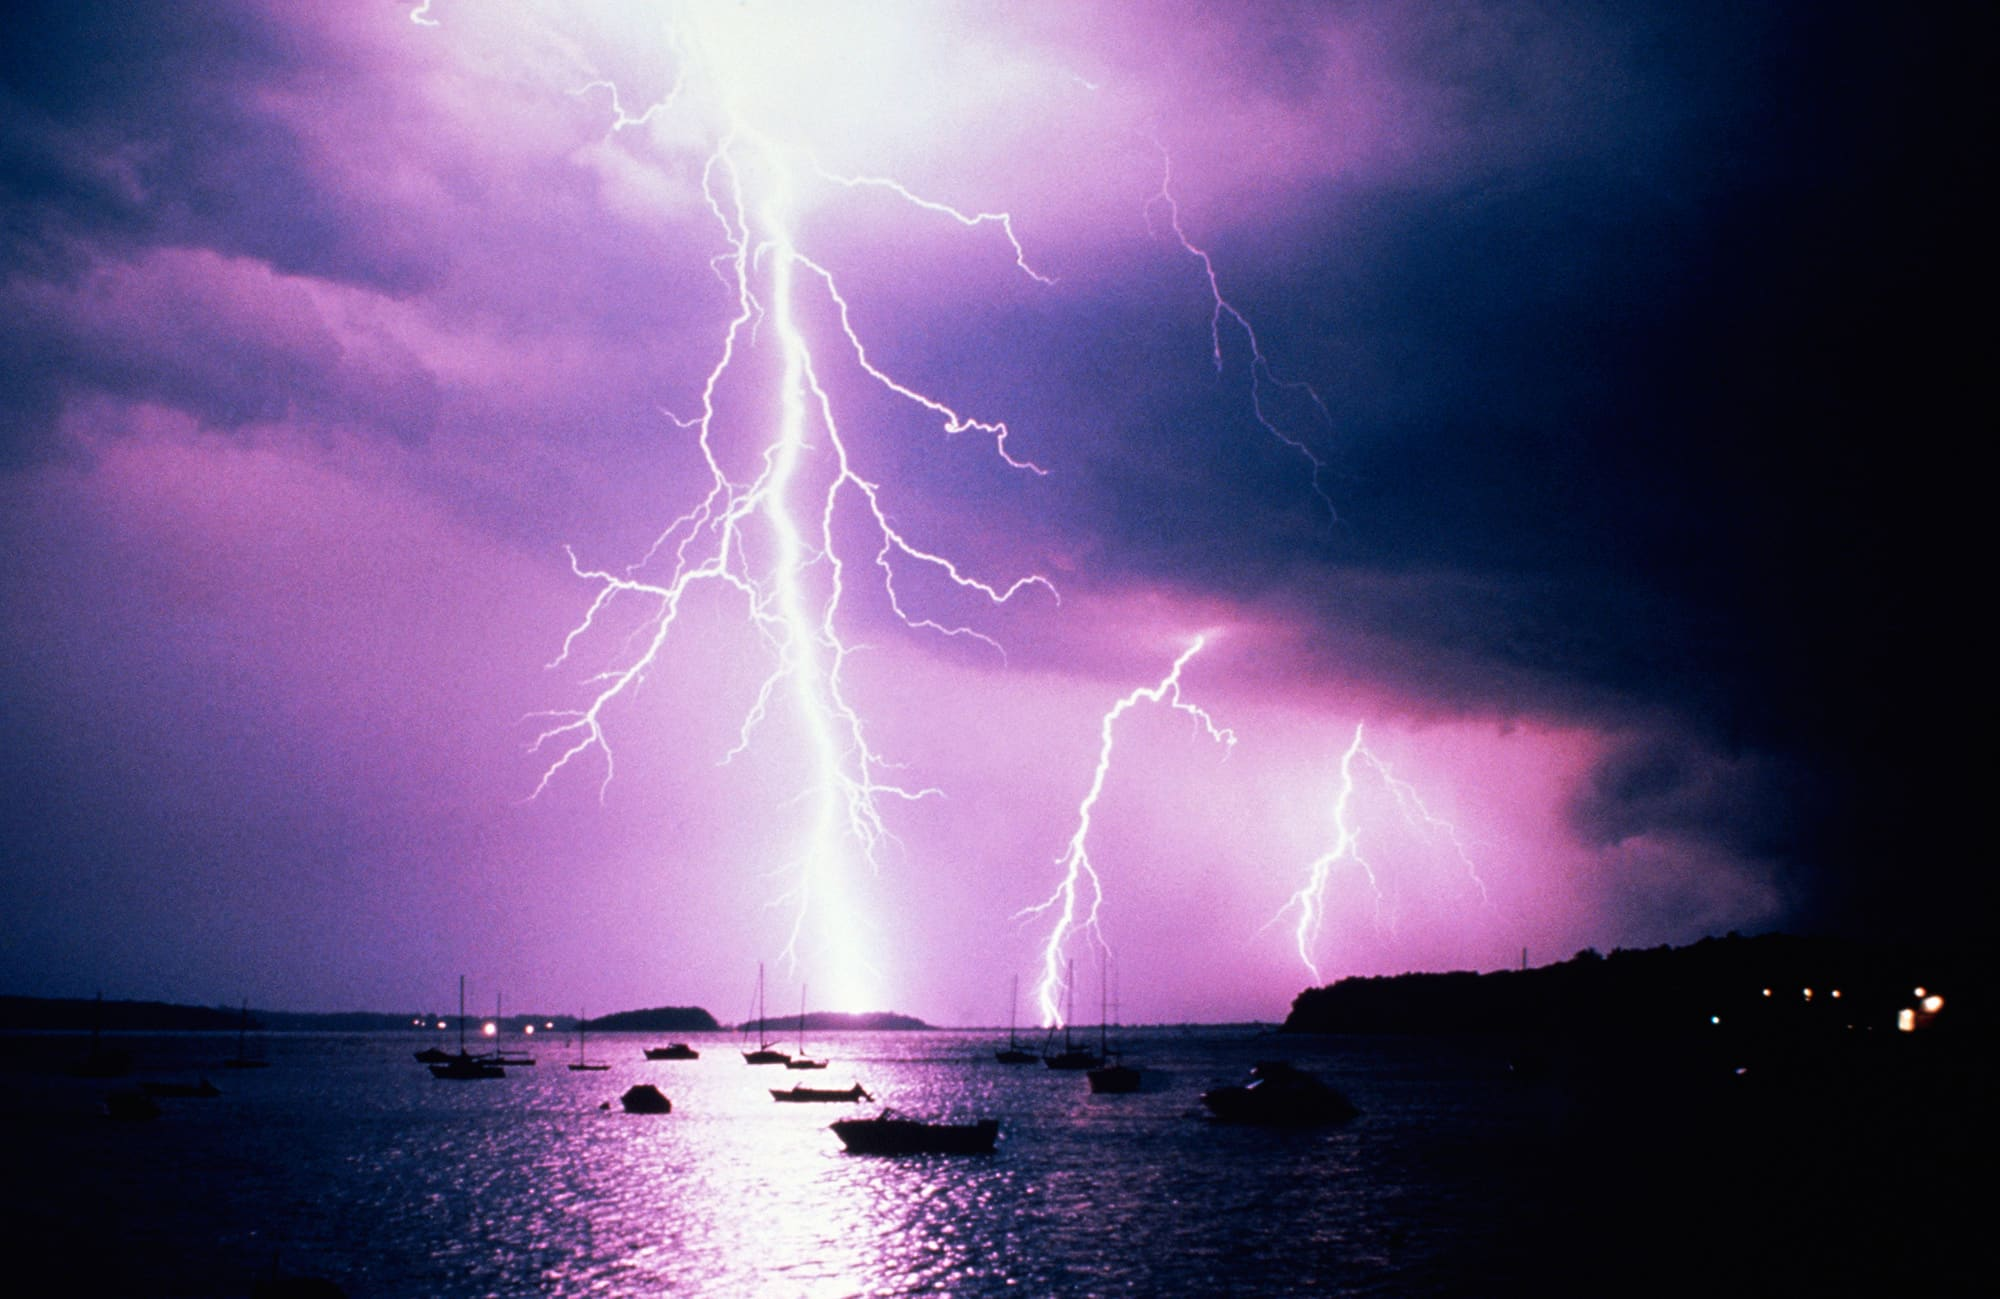 & How a man was struck by lightning indoors